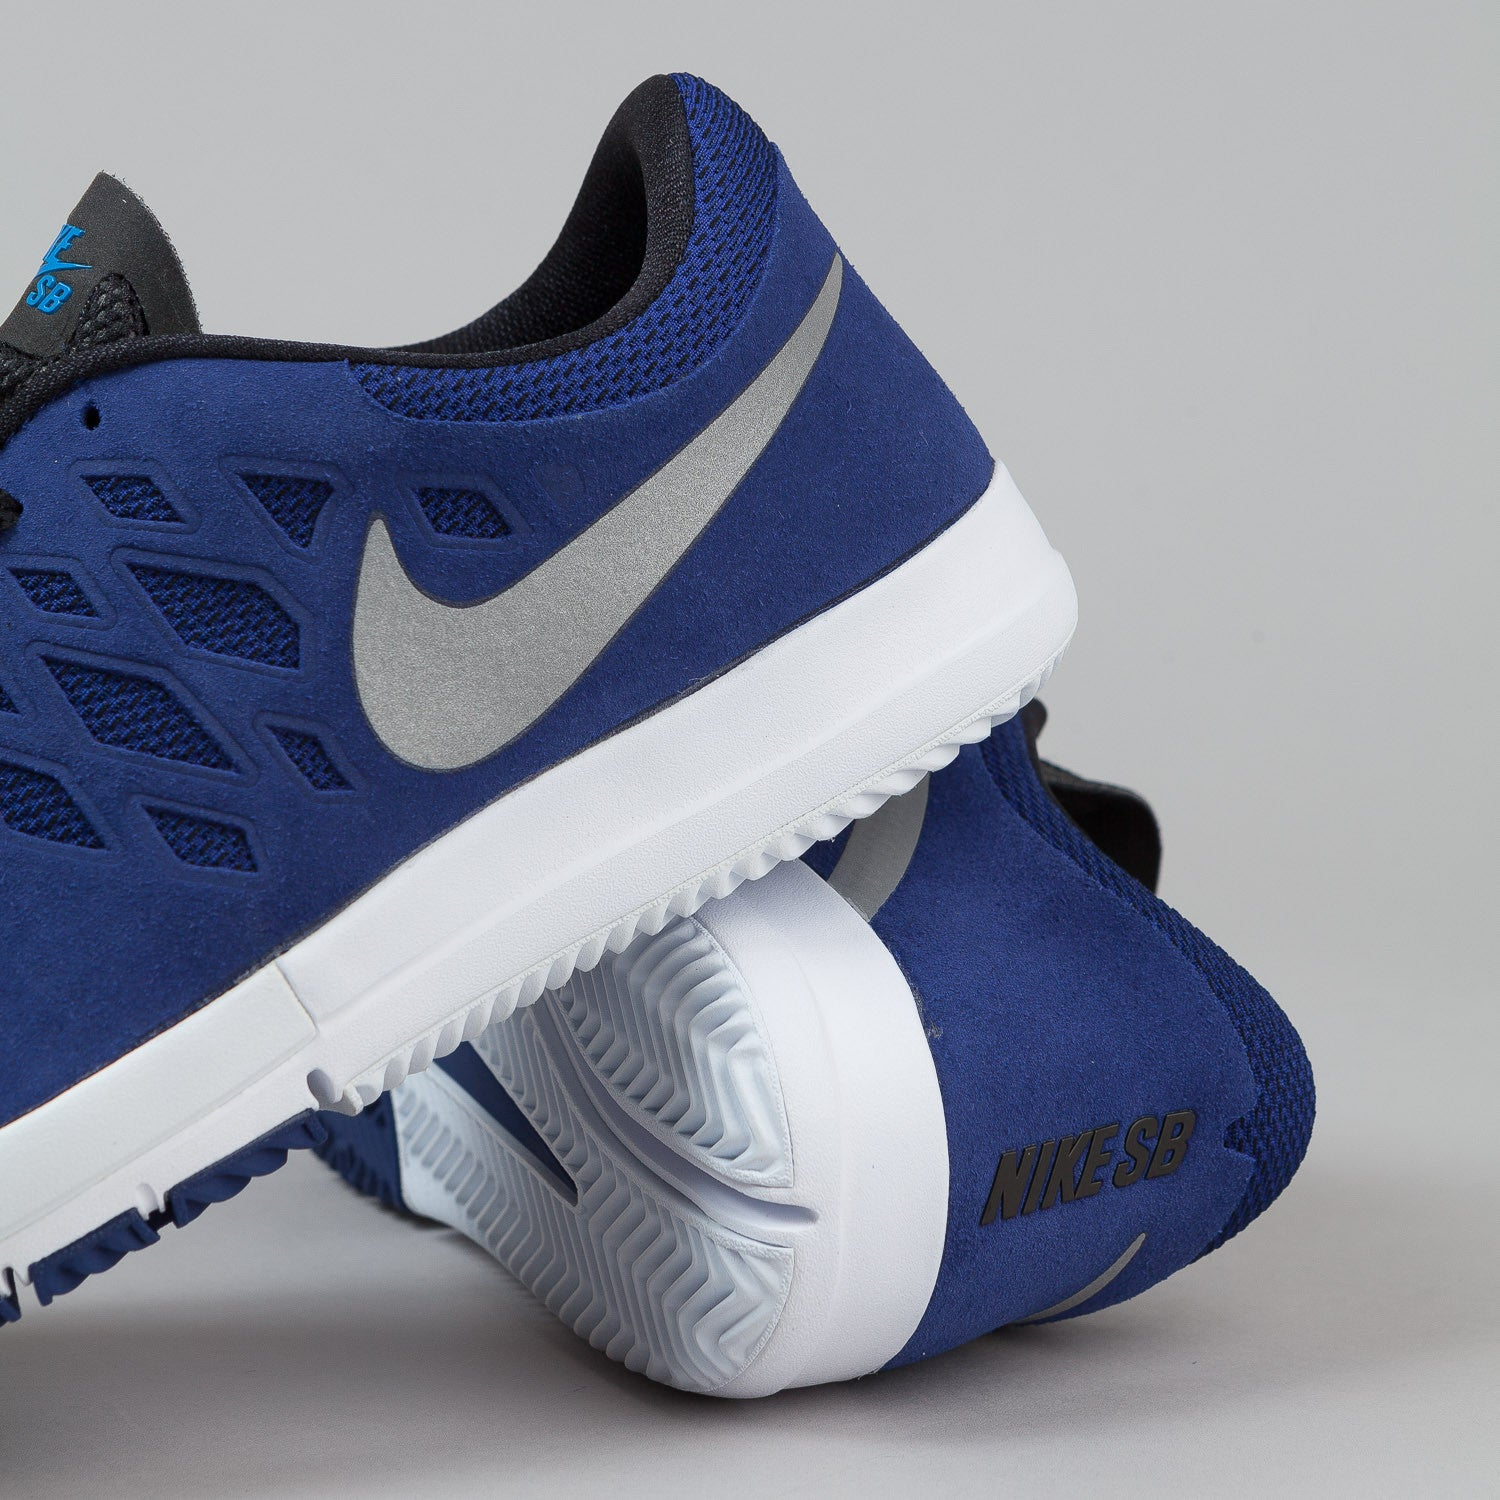 Nike SB Free Shoes - Deep Royal Blue / Metallic Silver / White